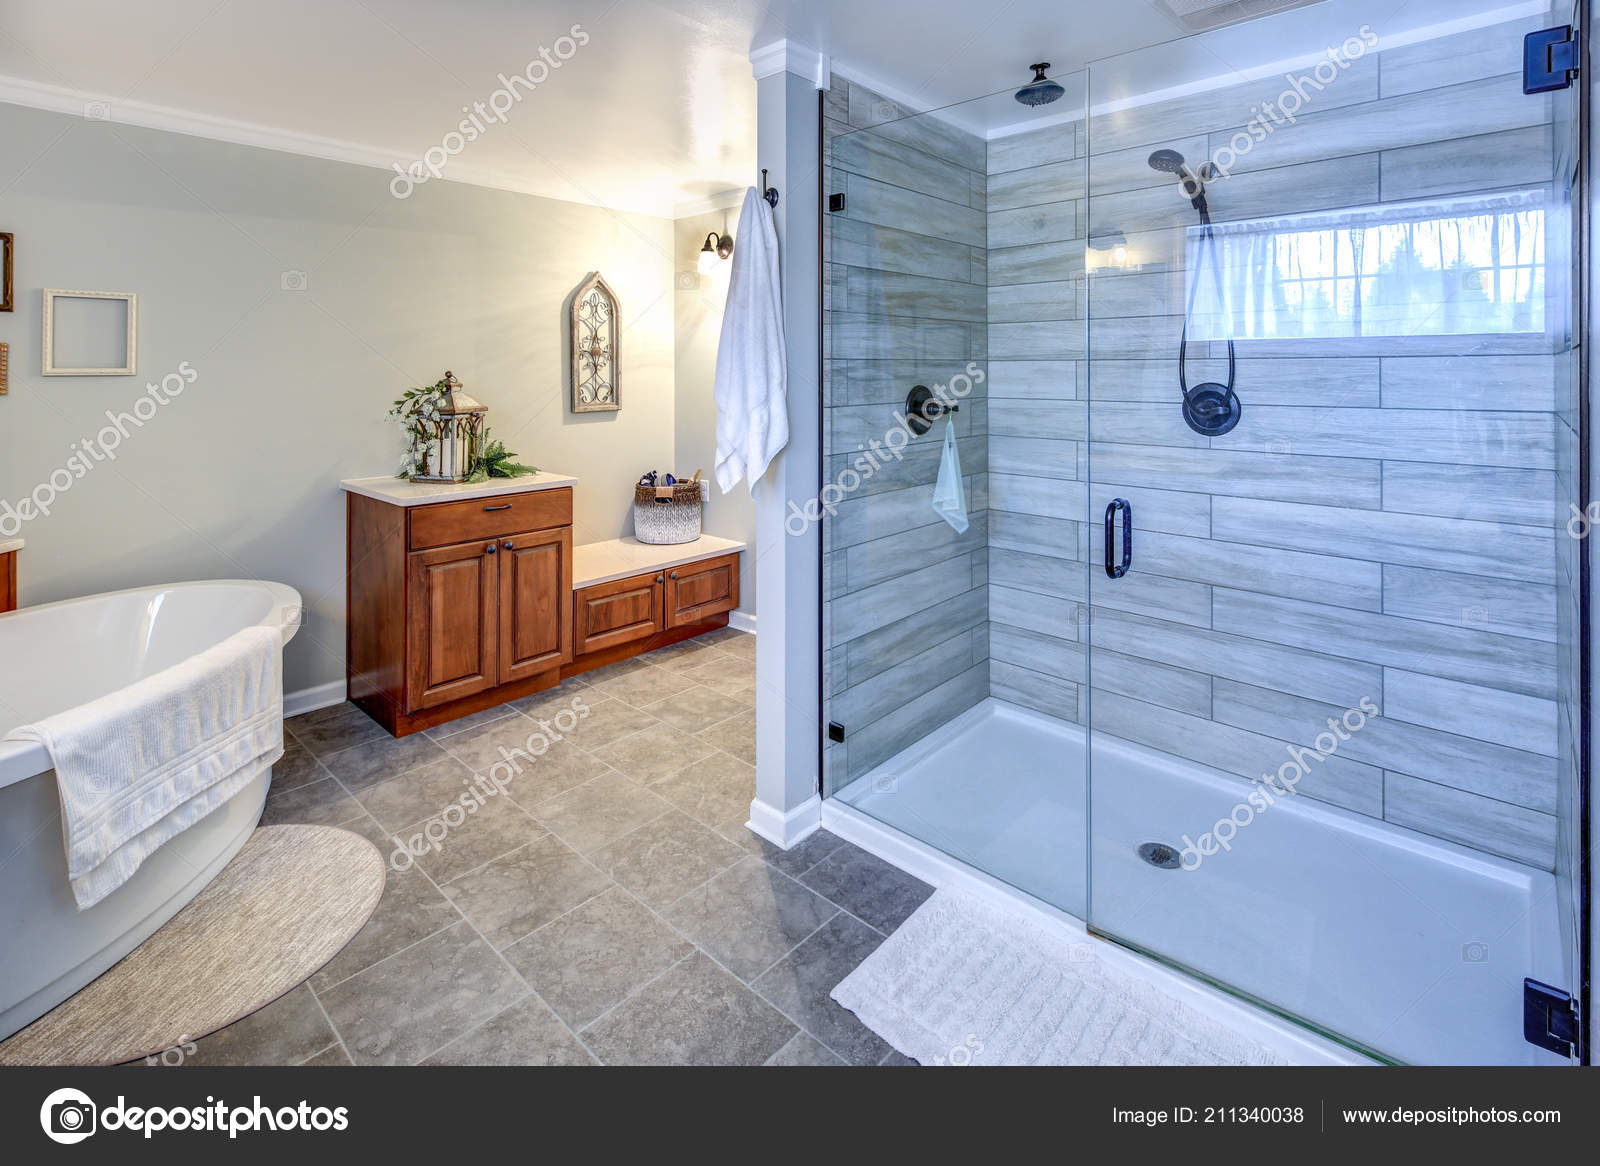 Amazing Master Bathroom Interior Glass, Pictures Of Master Bathrooms With Walk In Showers